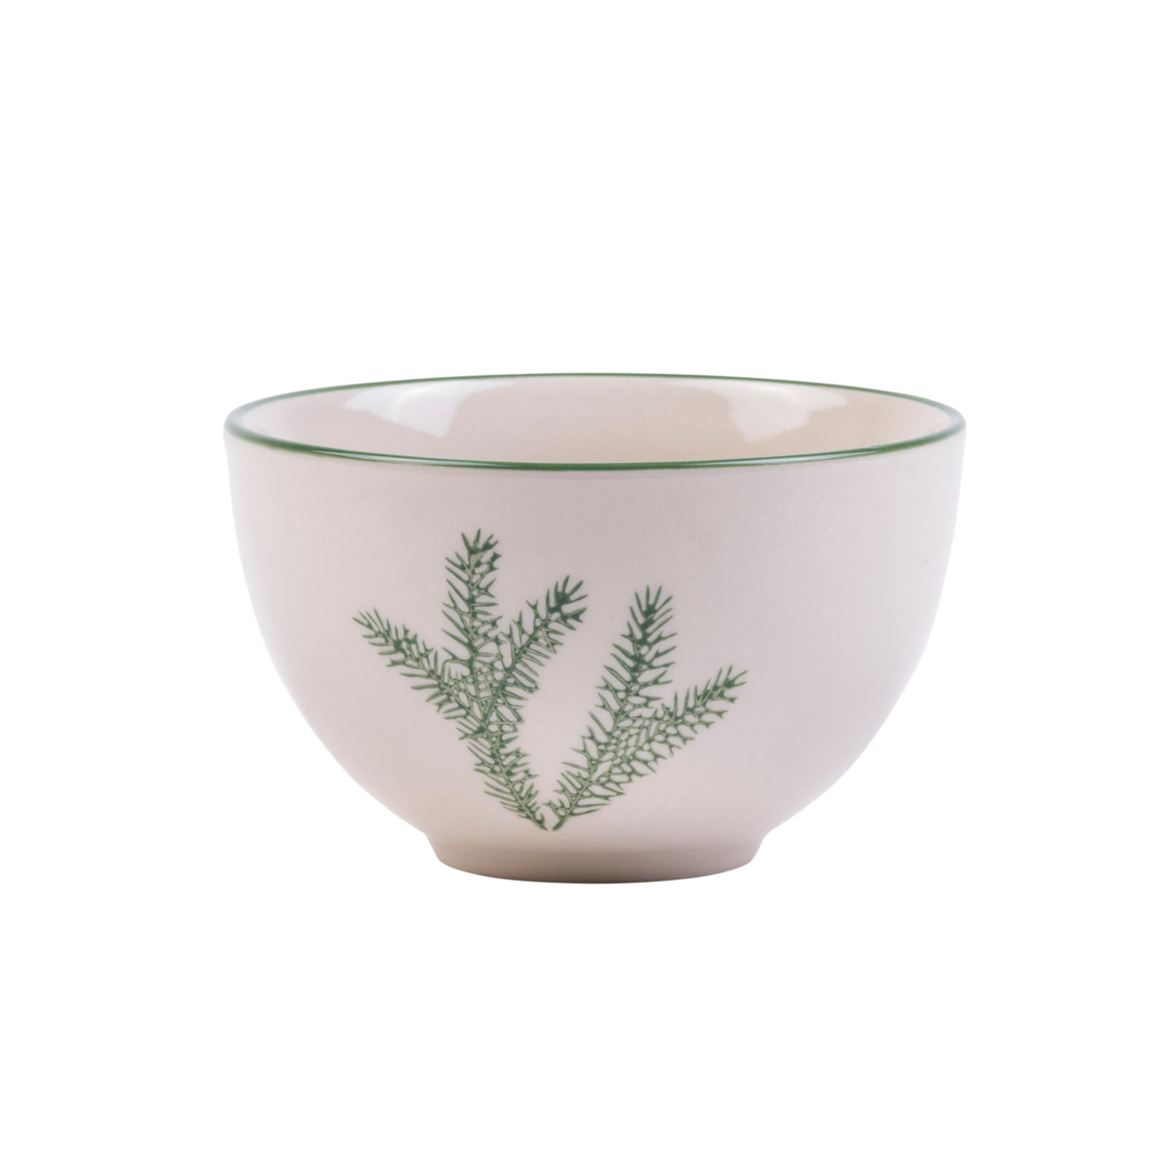 PINE BRANCH Bowl groen_pine-branch-bowl-groen